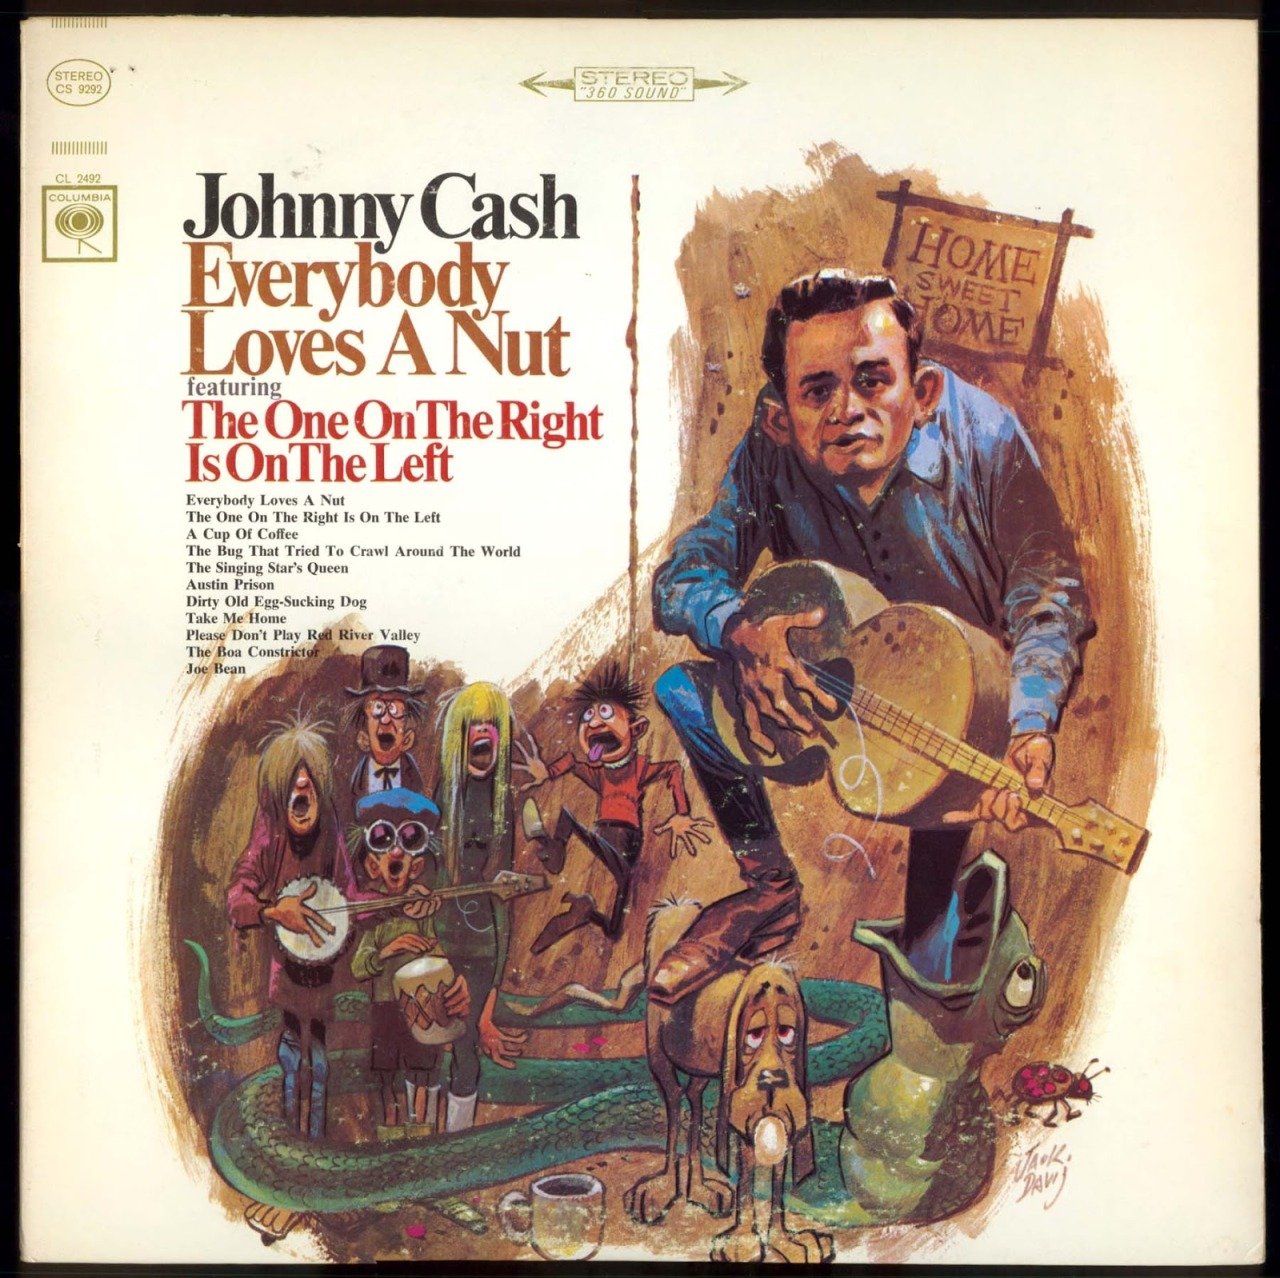 Johnny Cash - Everybody Loves a Nut, 1966 Album cover by Jack Davis.